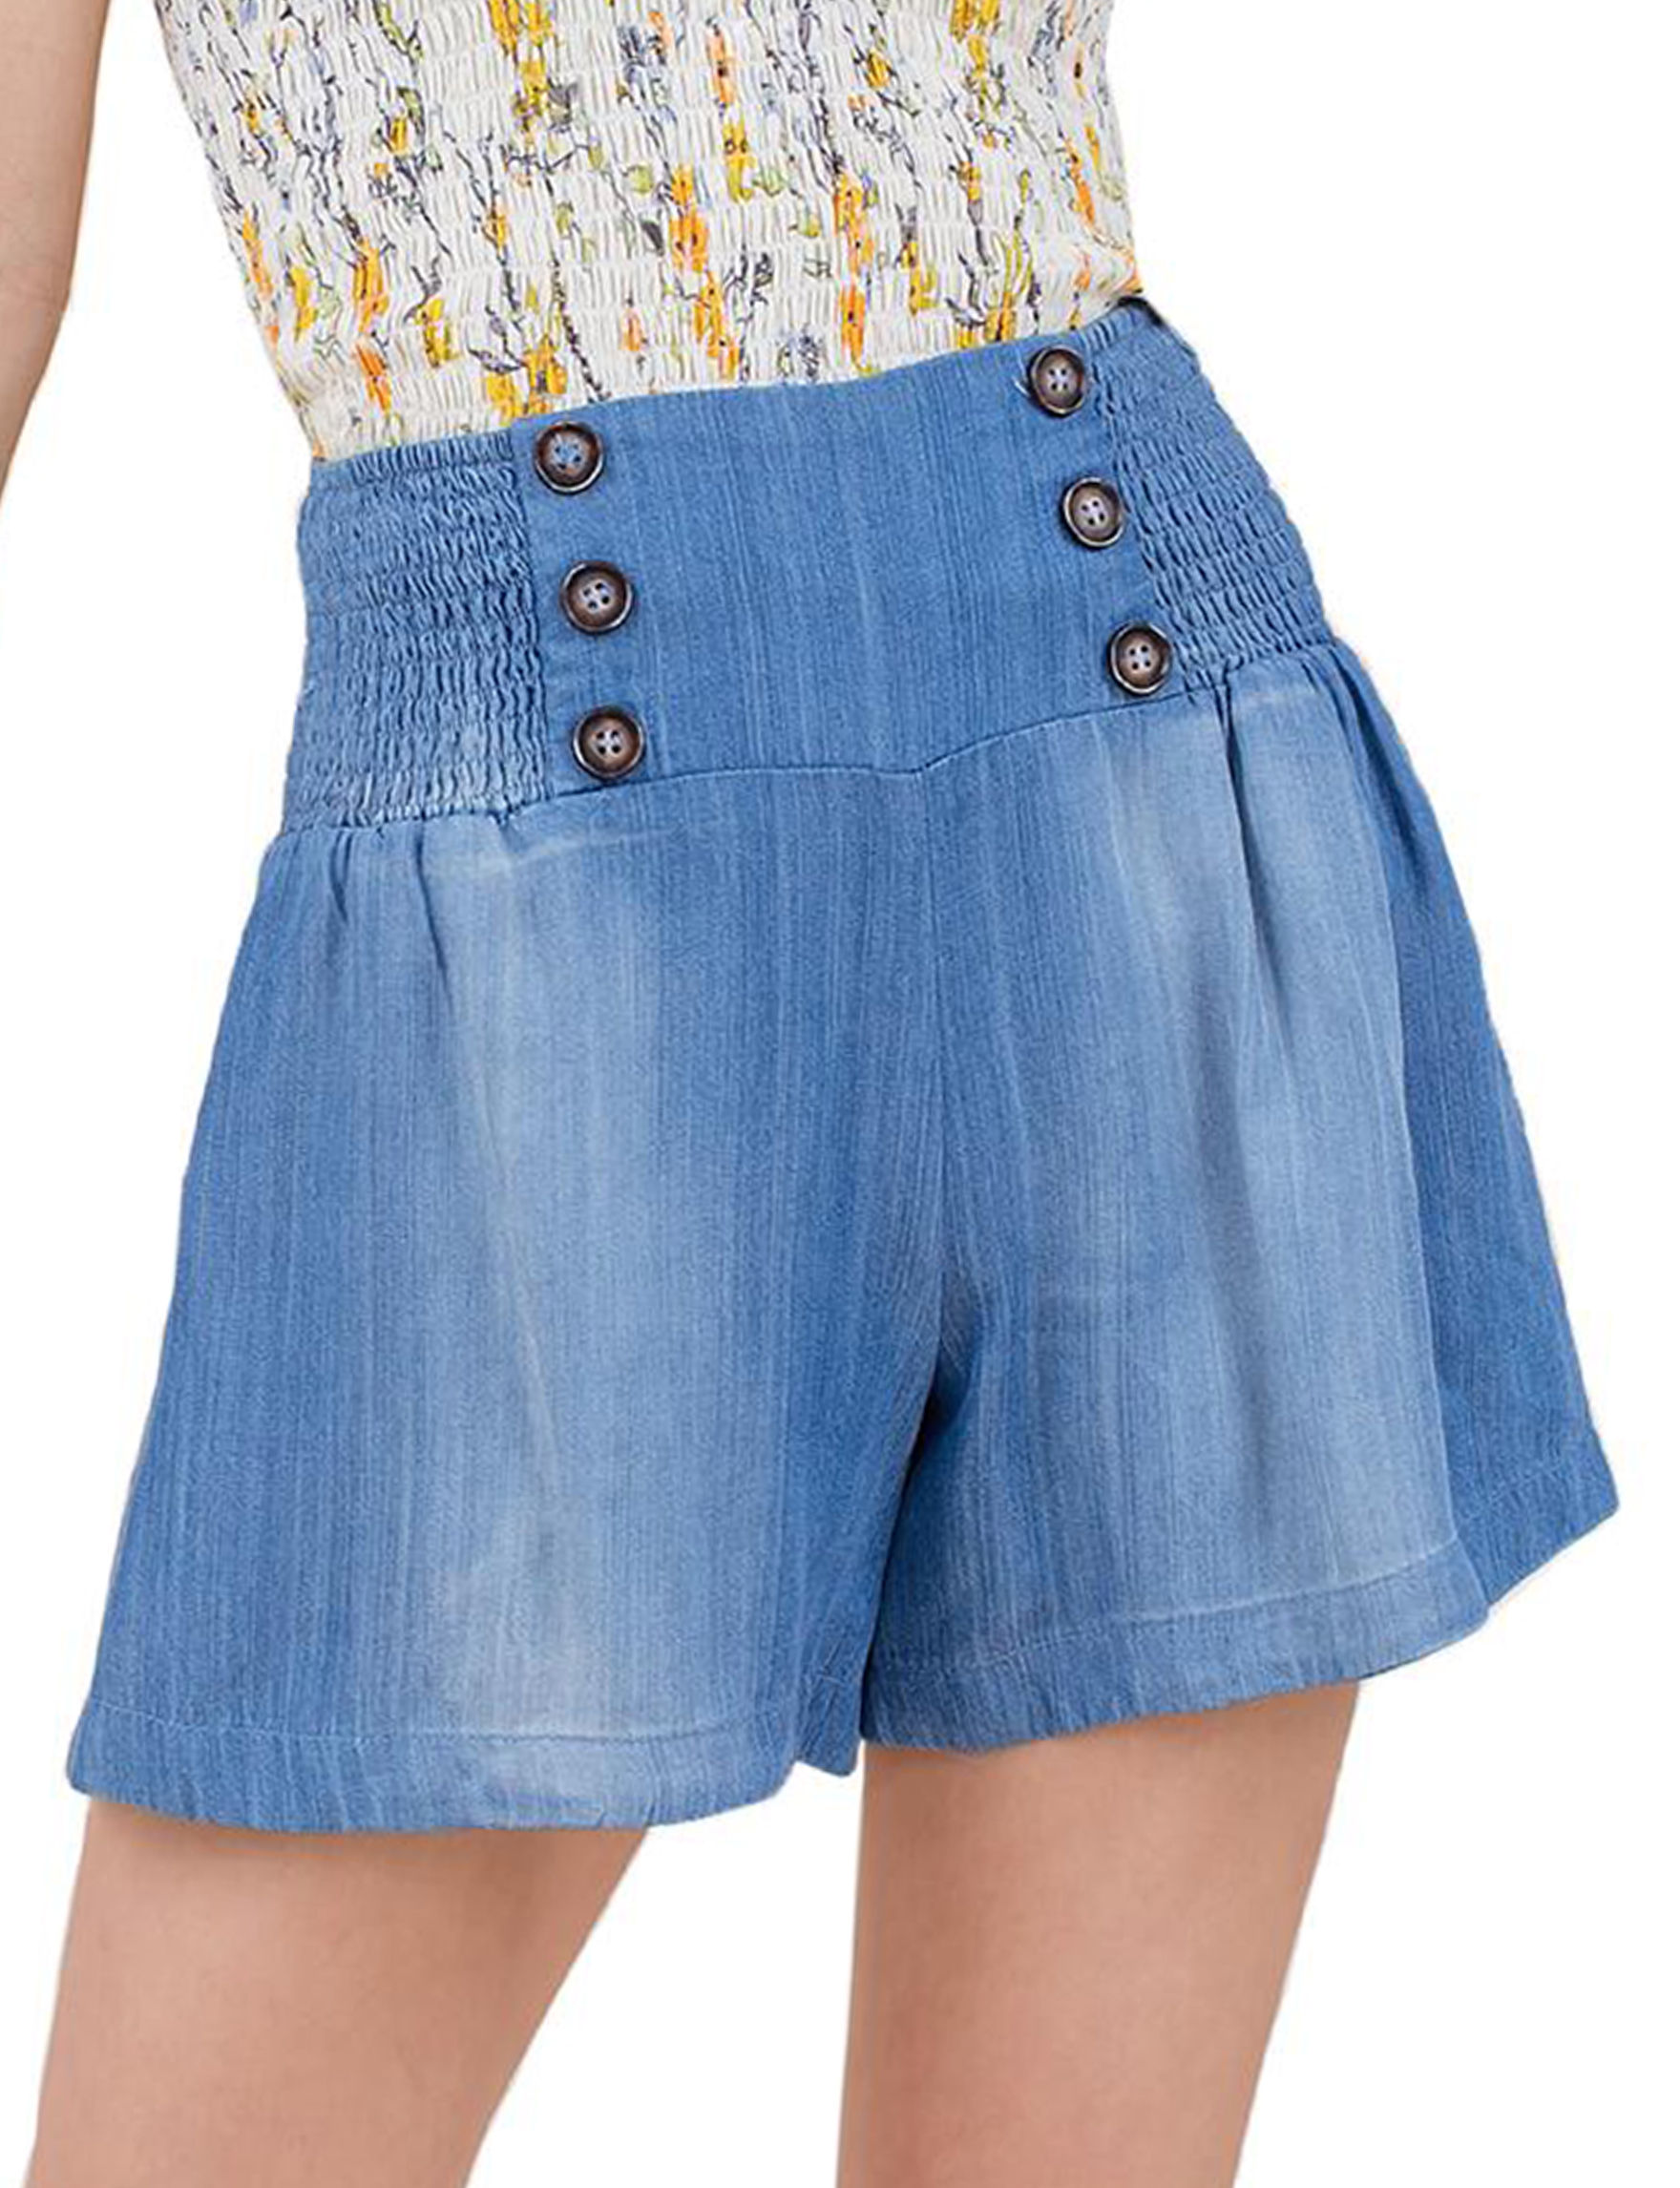 C + J Collections Blue Soft Shorts